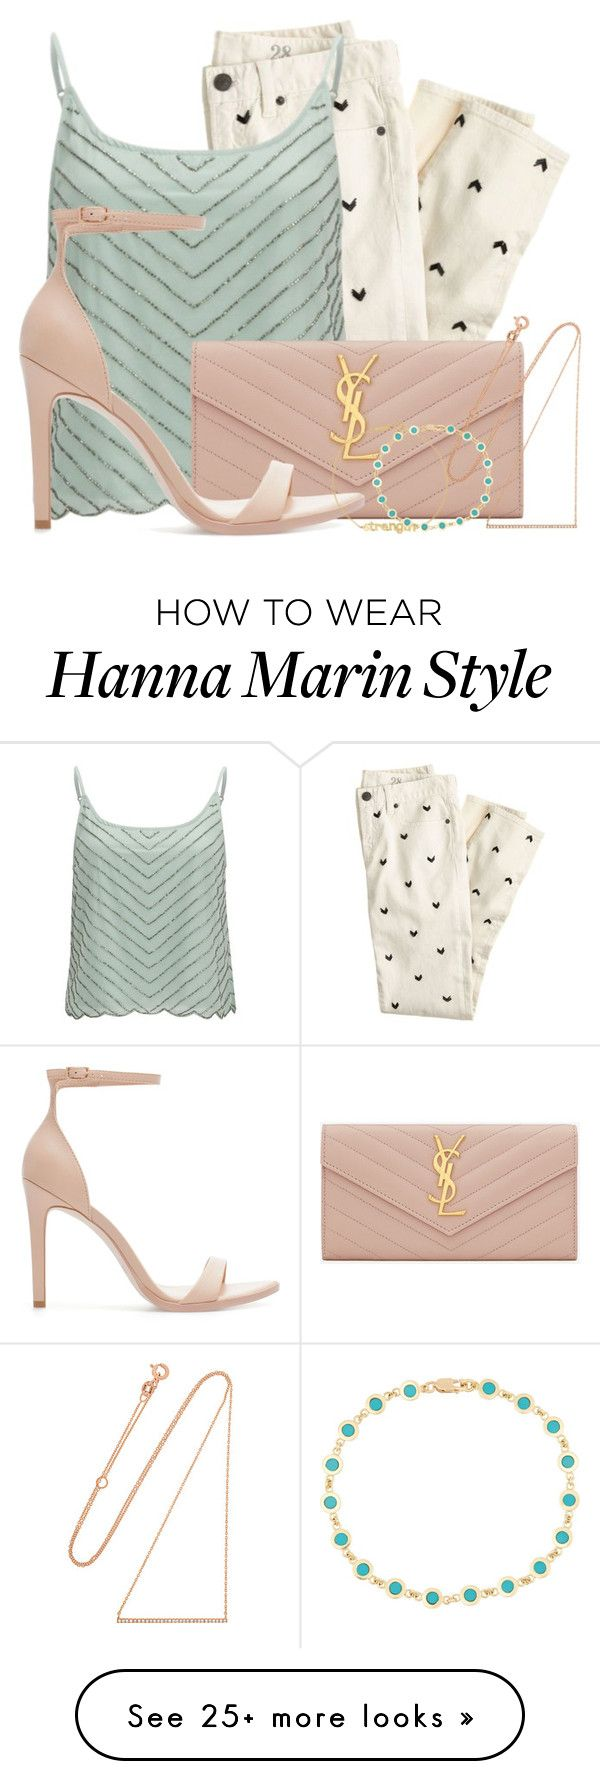 """Hanna Marin inspired look"" by candysweetieglam on Polyvore featuring J.Crew, VILA, Yves Saint Laurent, Diane Kordas, Zara, Jennifer Meyer Jewelry, women's clothing, women, female and woman"